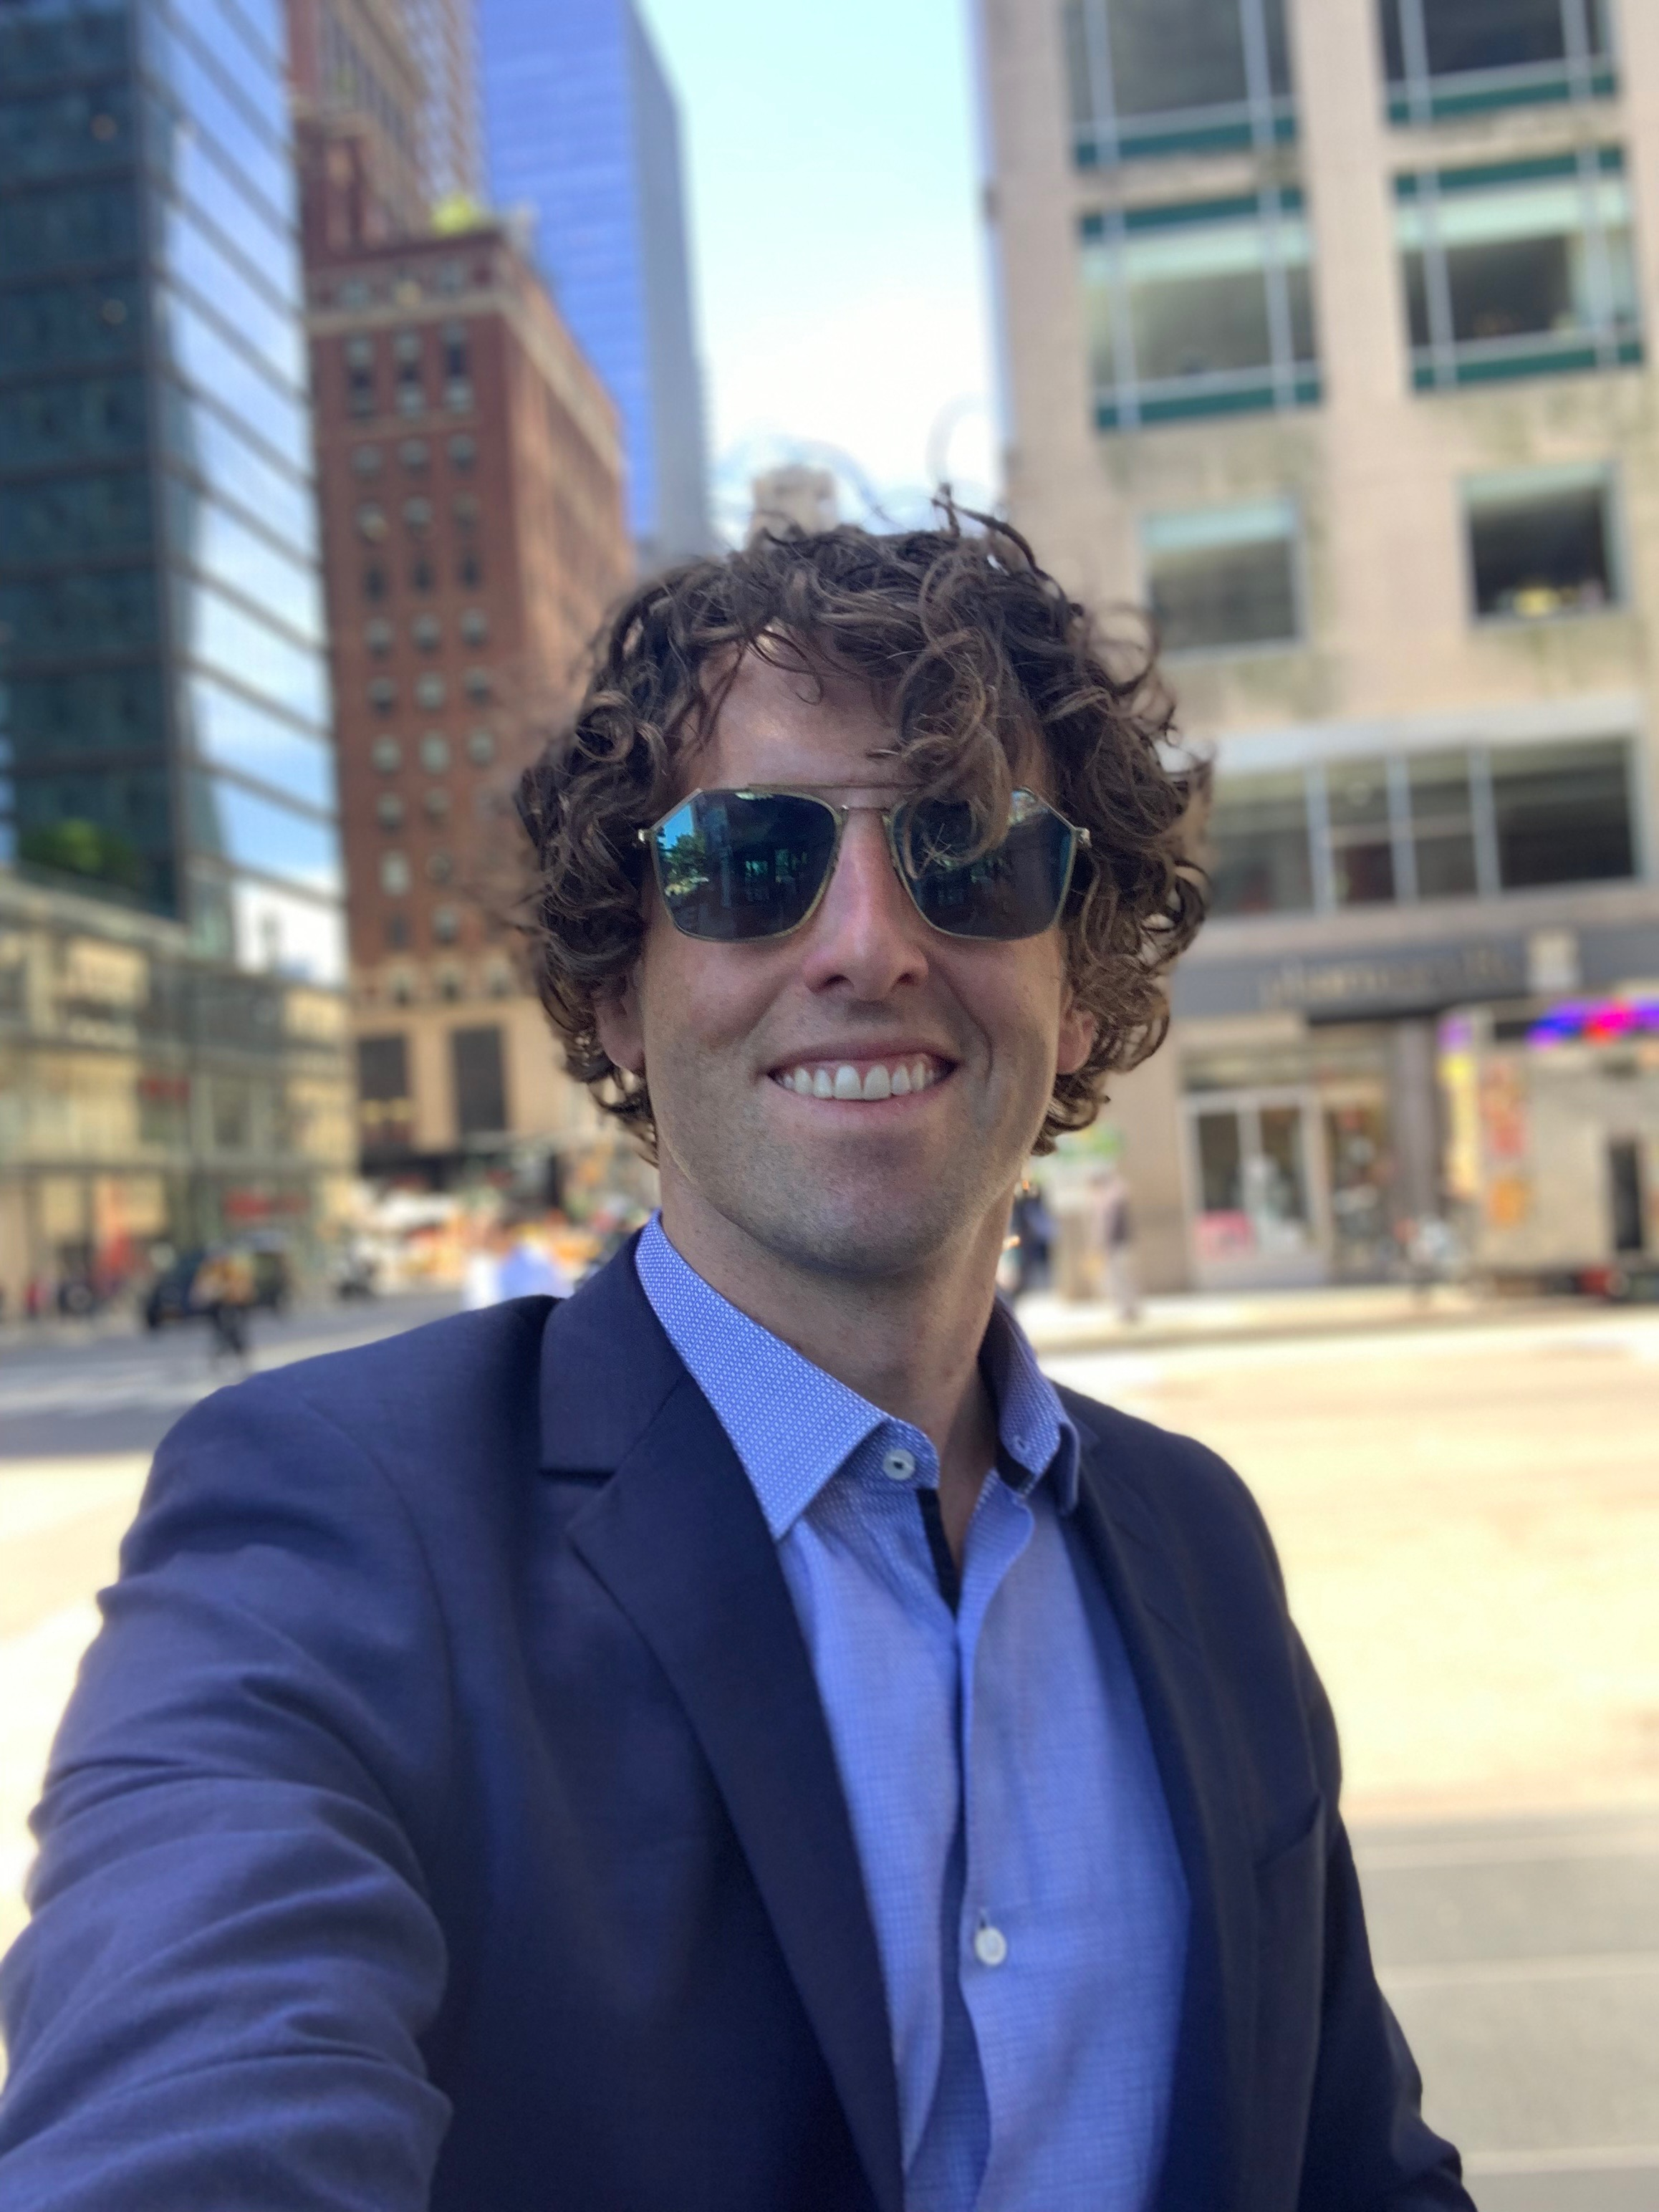 About Brandon - Brandon Hensinger is a recognized leader in turning startups into global brands, sales training and development, management coaching, designing international business models, and establishing intricate distribution channels.